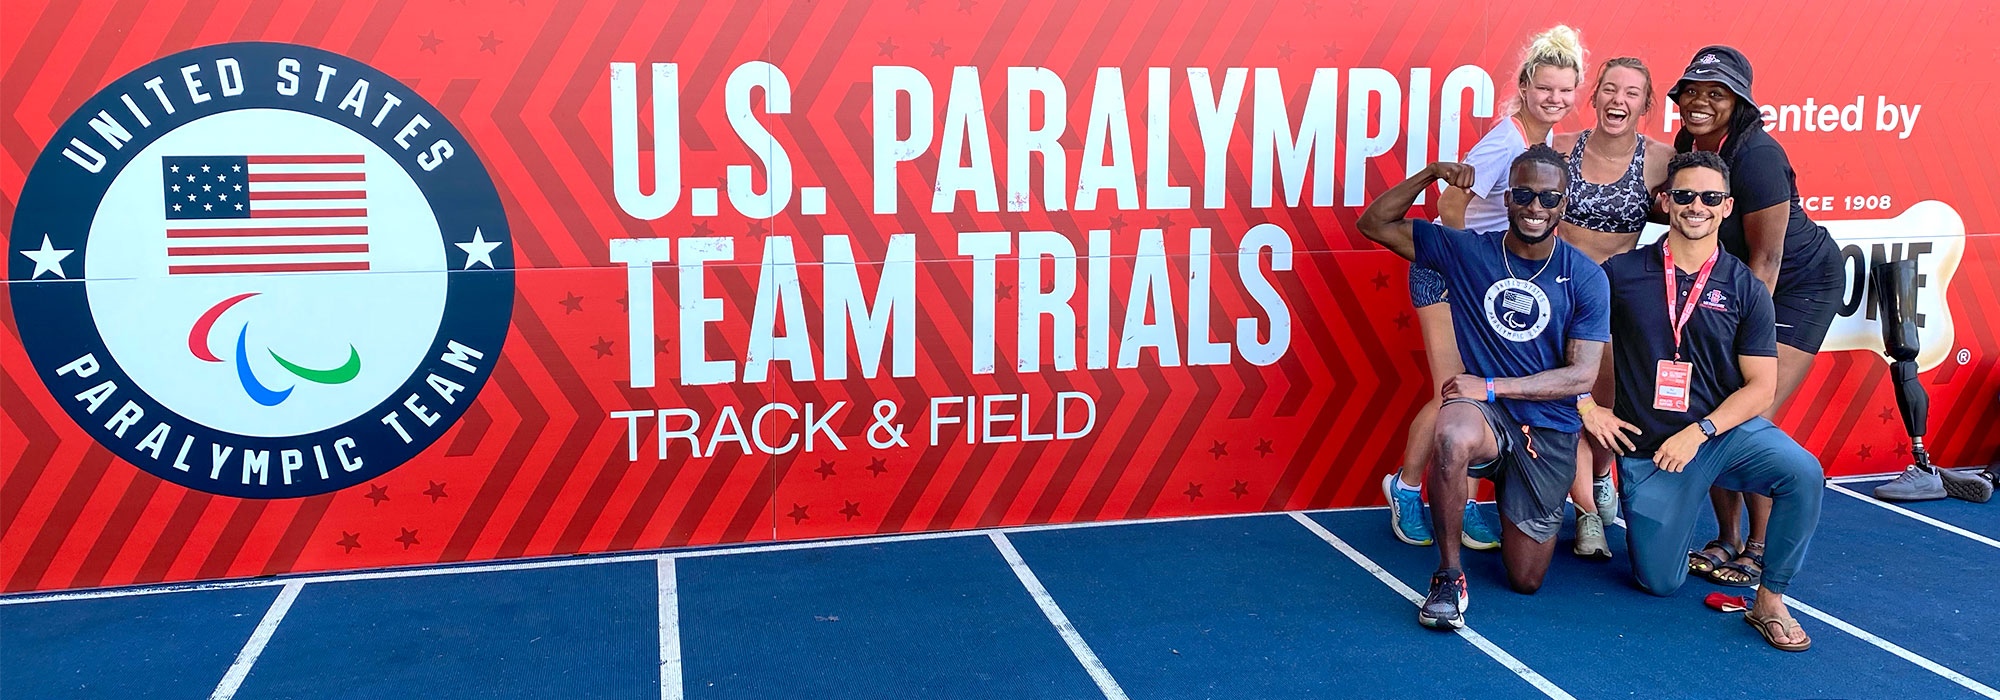 Adapted Athletics group in front of US Paralympic Team Trials Track & Field sign